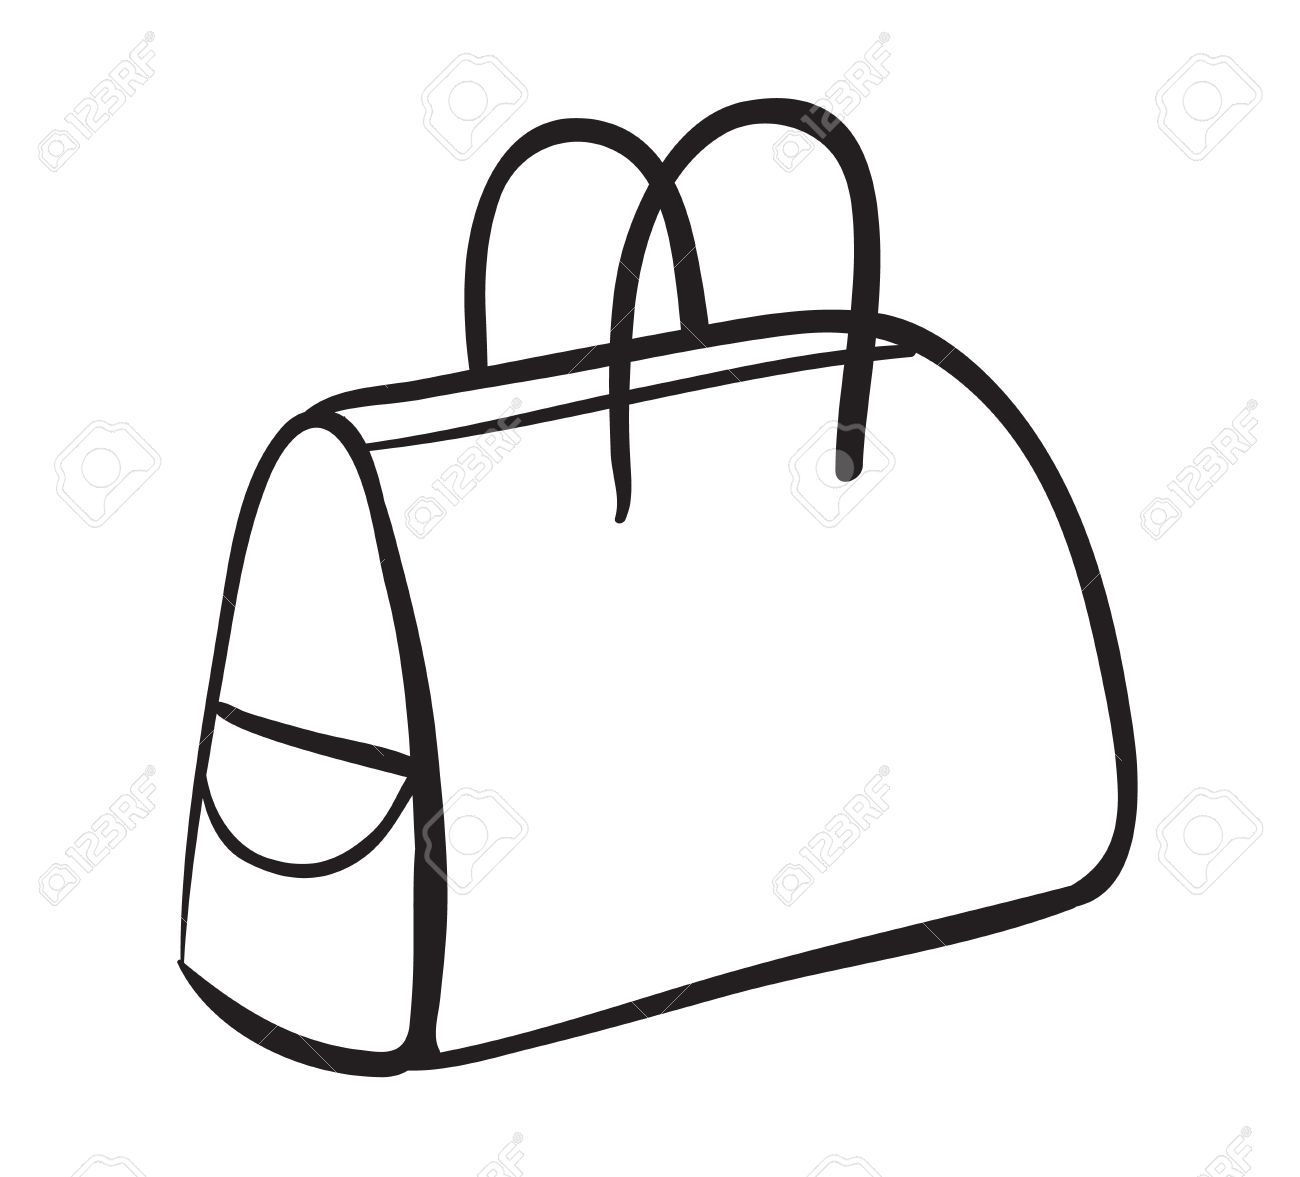 Black and white purse clipart 6 » Clipart Portal.